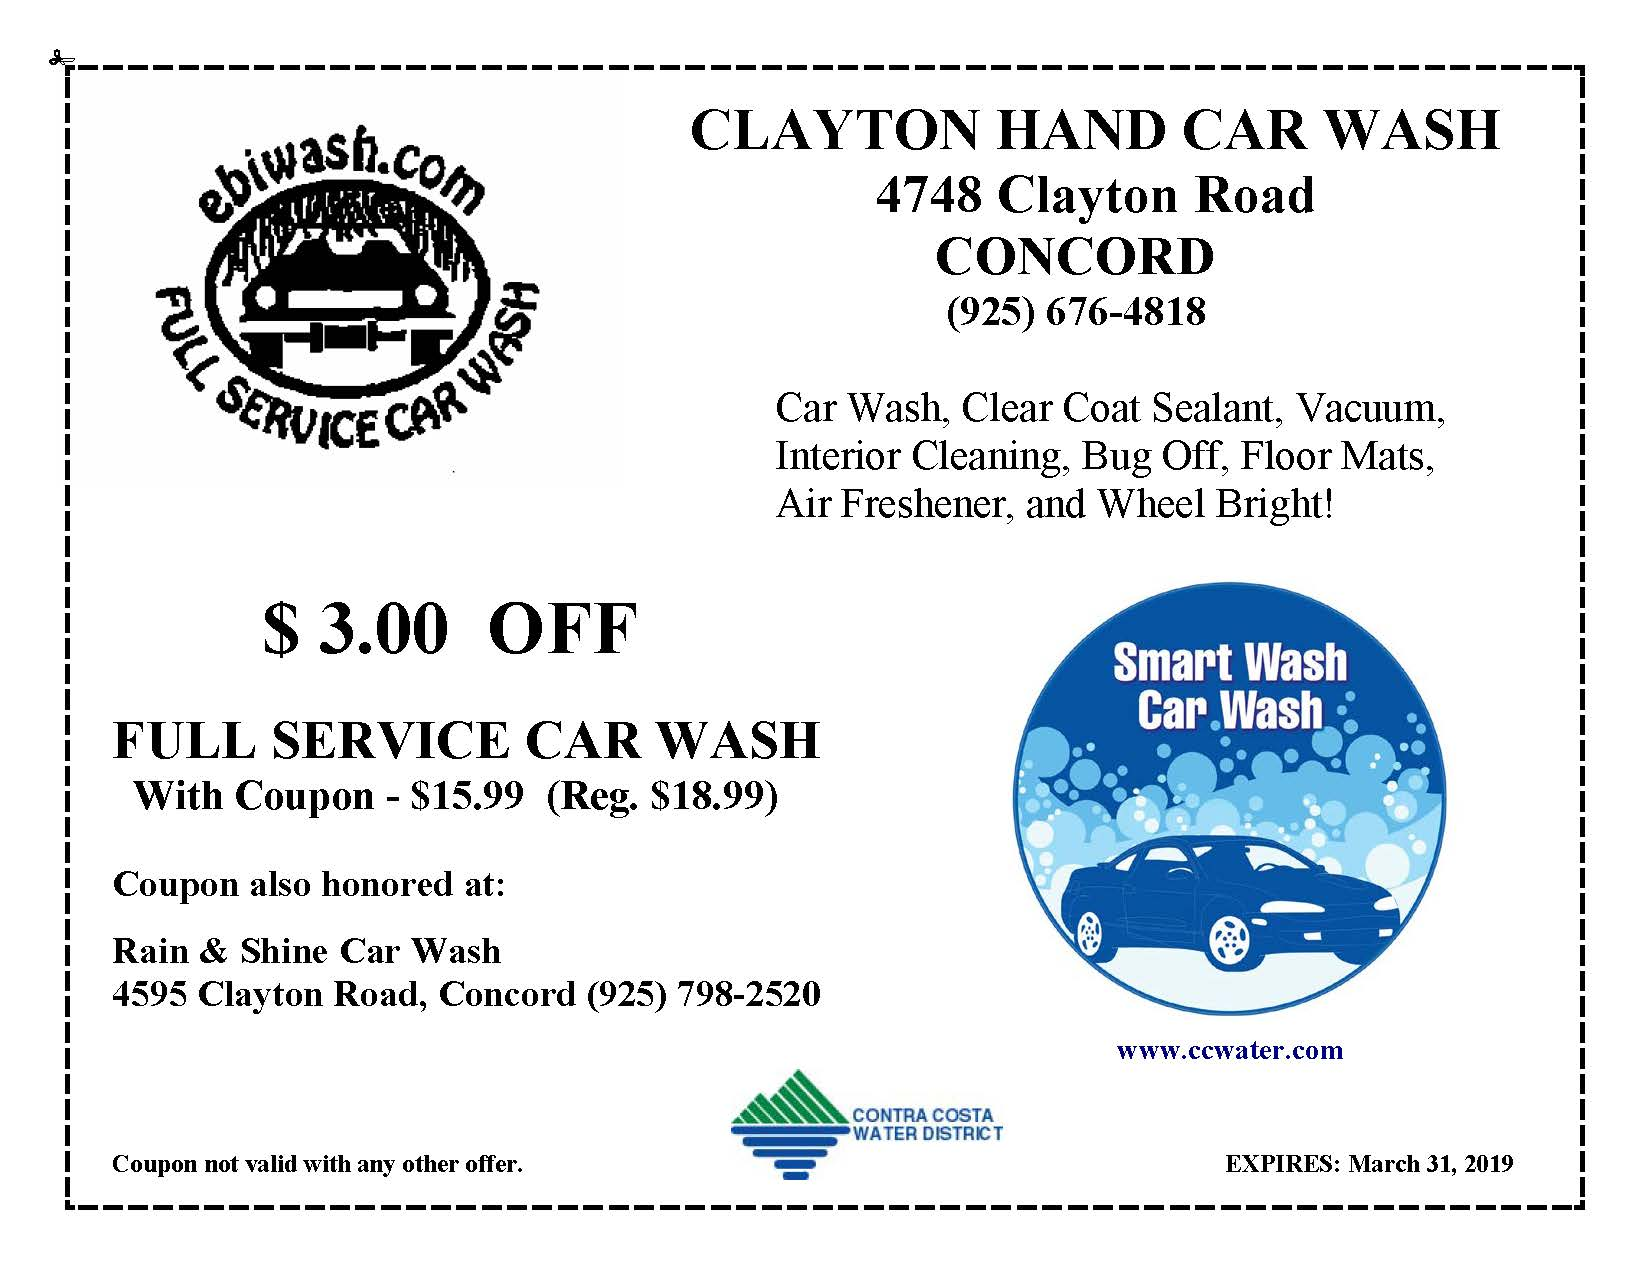 Clayton Hand Coupon